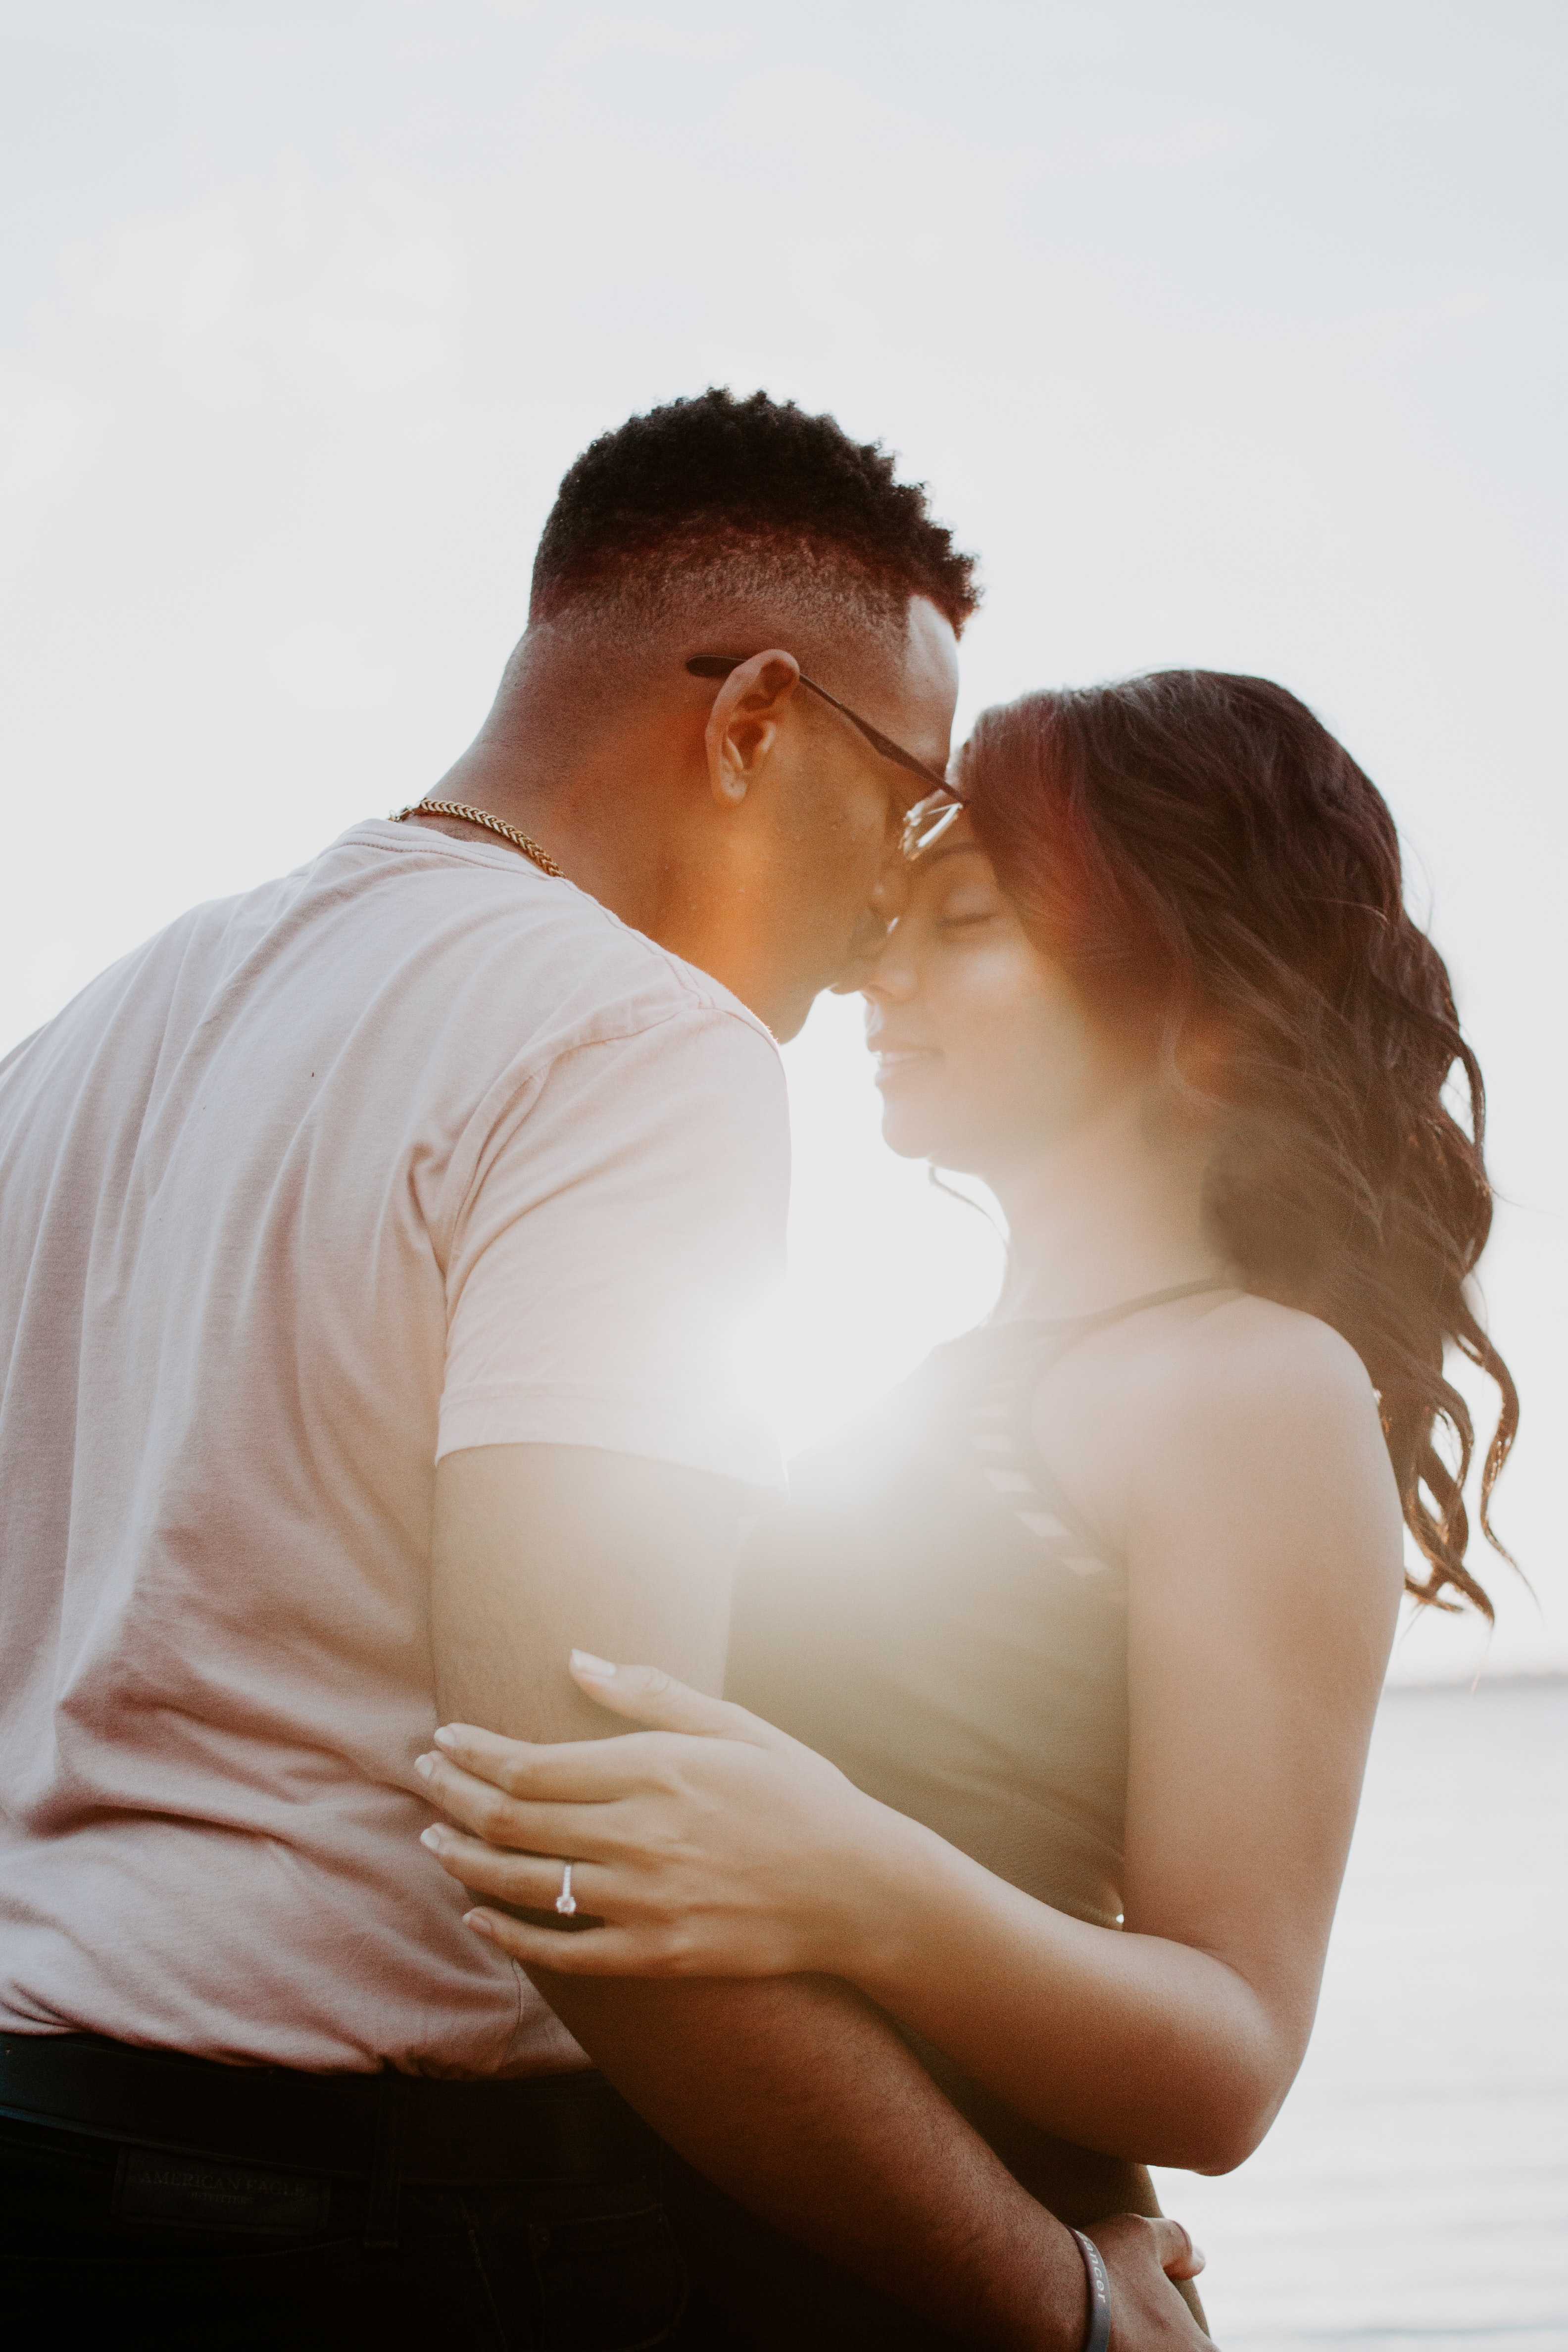 Man wearing white shirt kissing woman in her nose photo